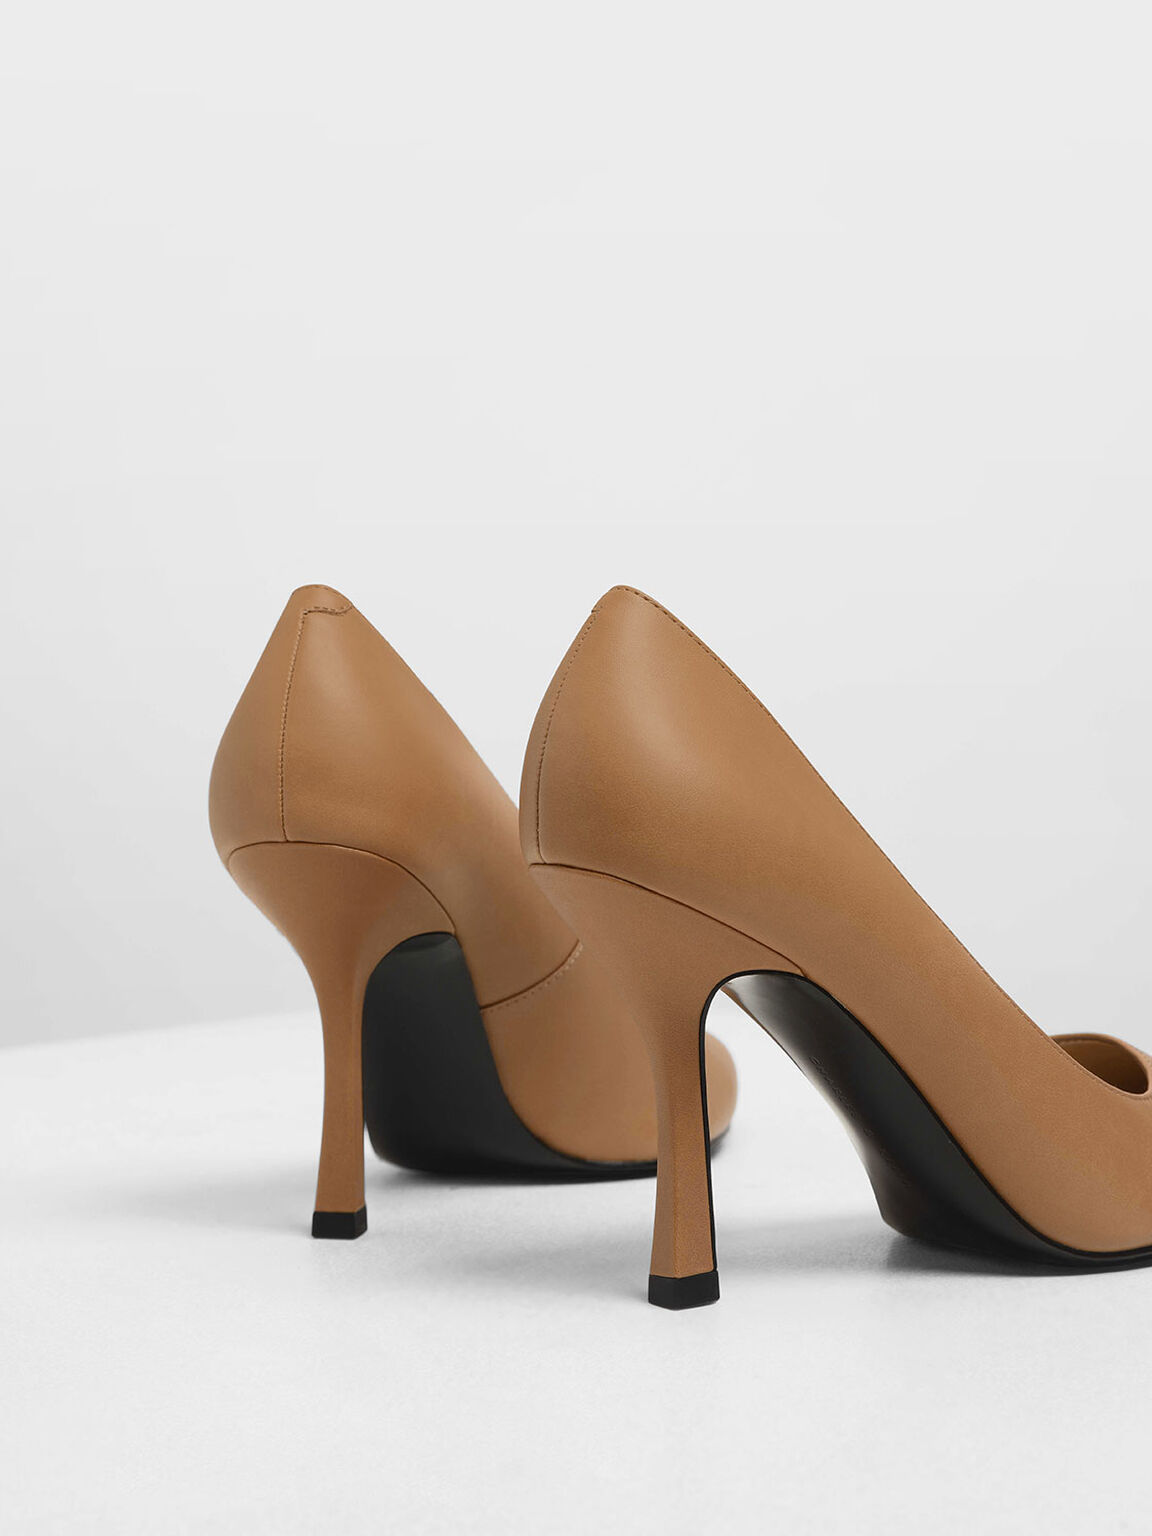 Curved Stiletto Heel Pumps, Sand, hi-res